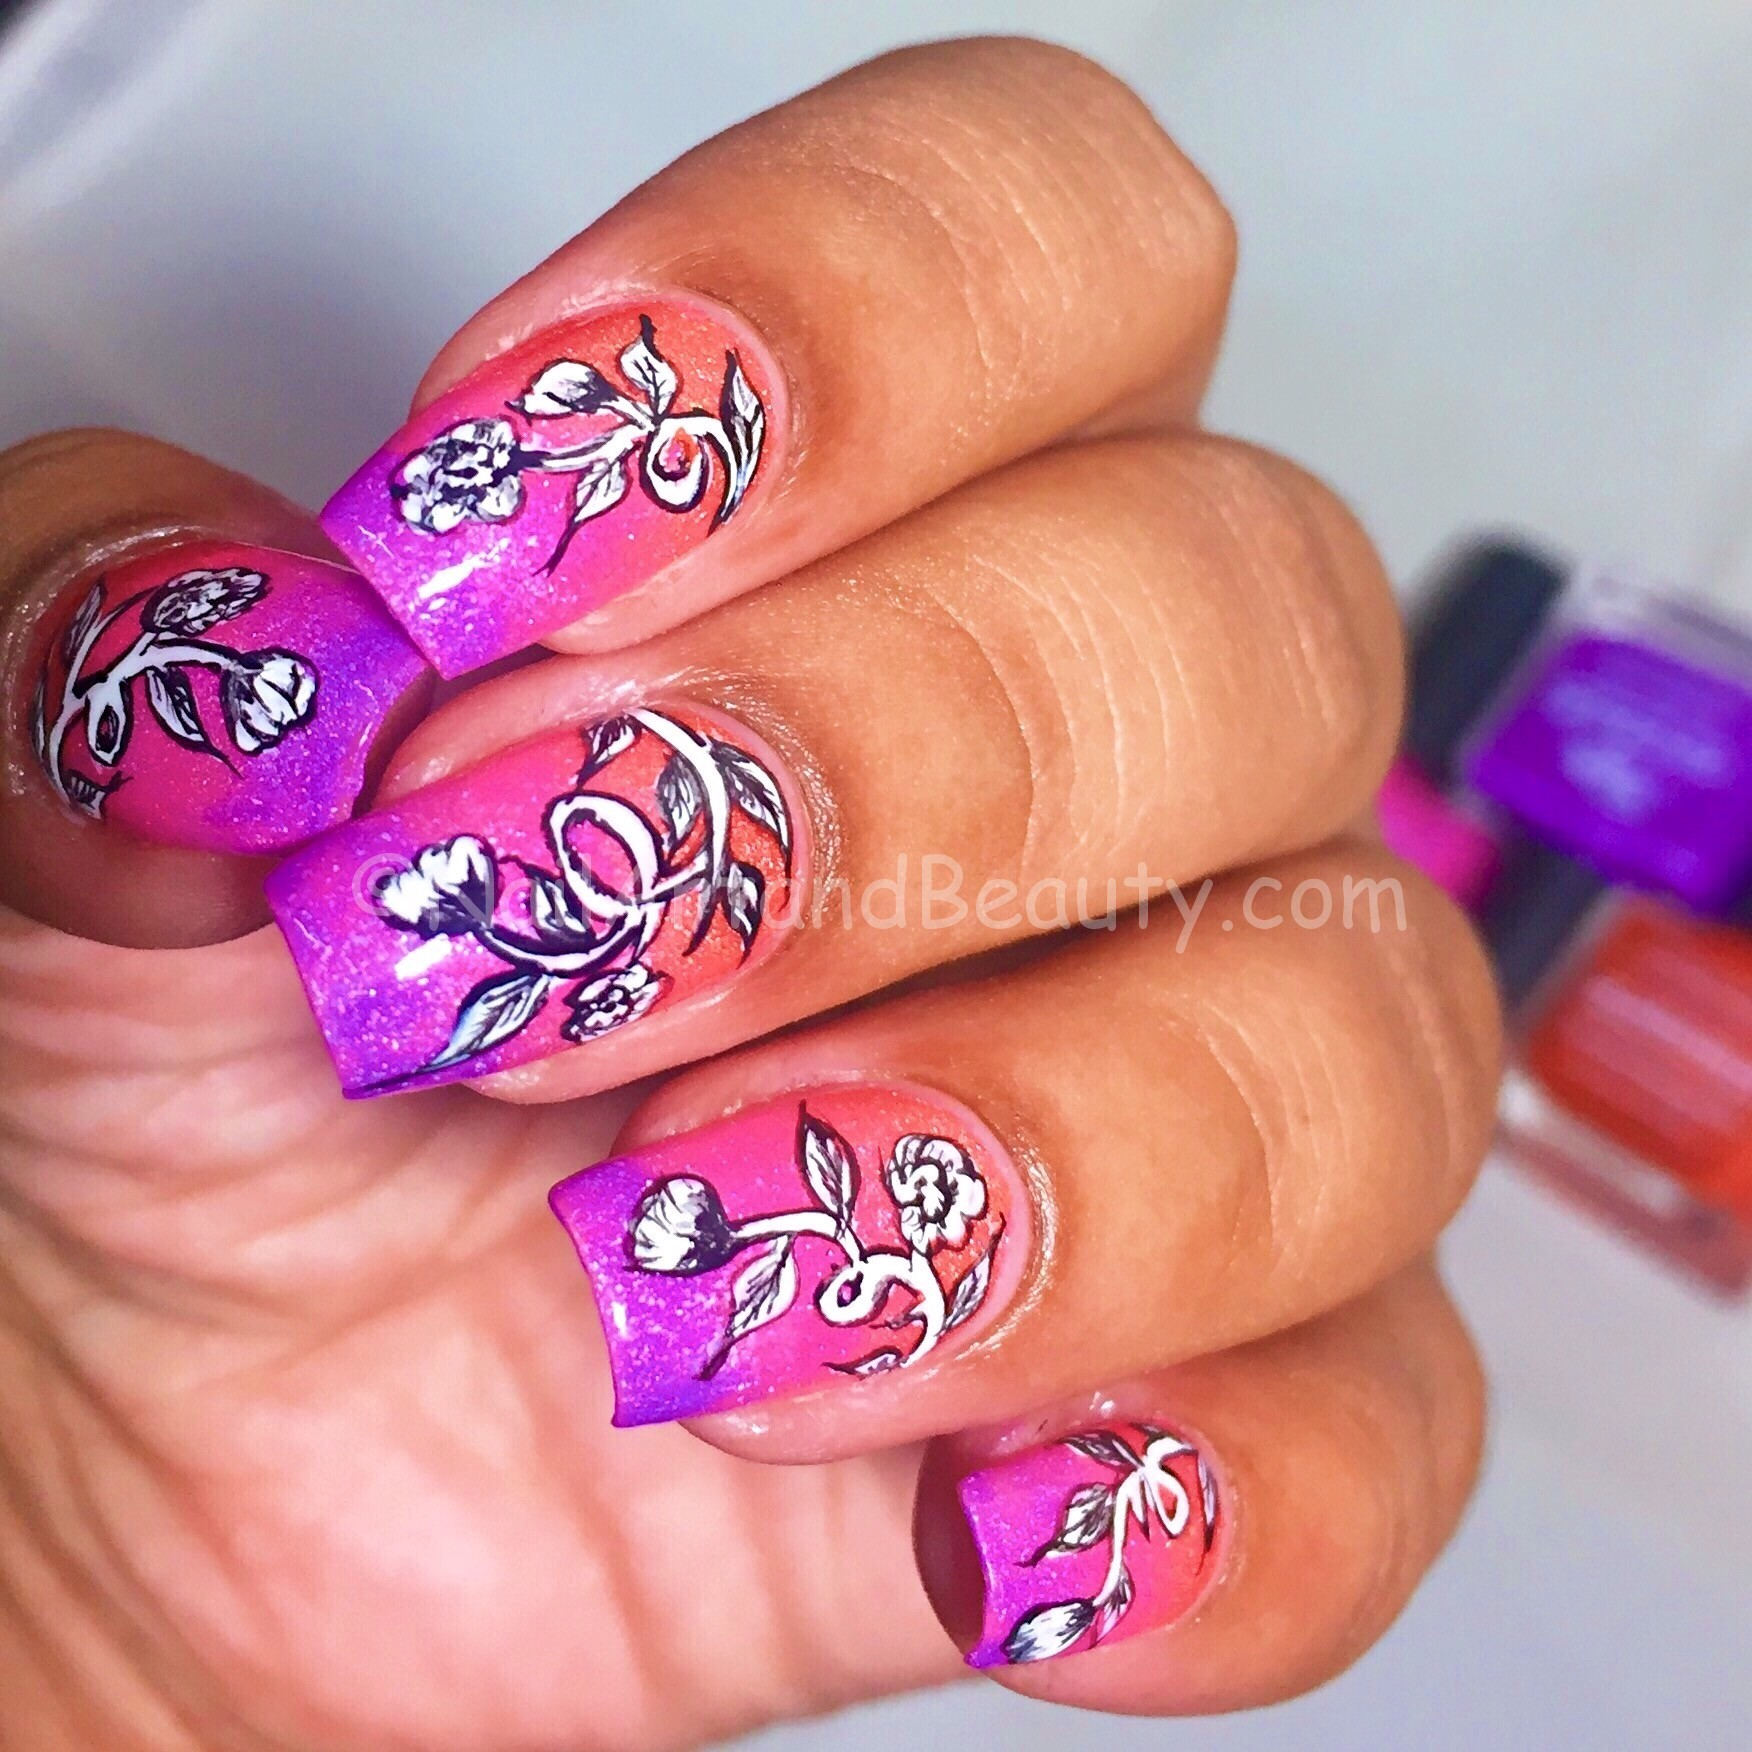 Freehand Vintage Florals on Bright Gradient